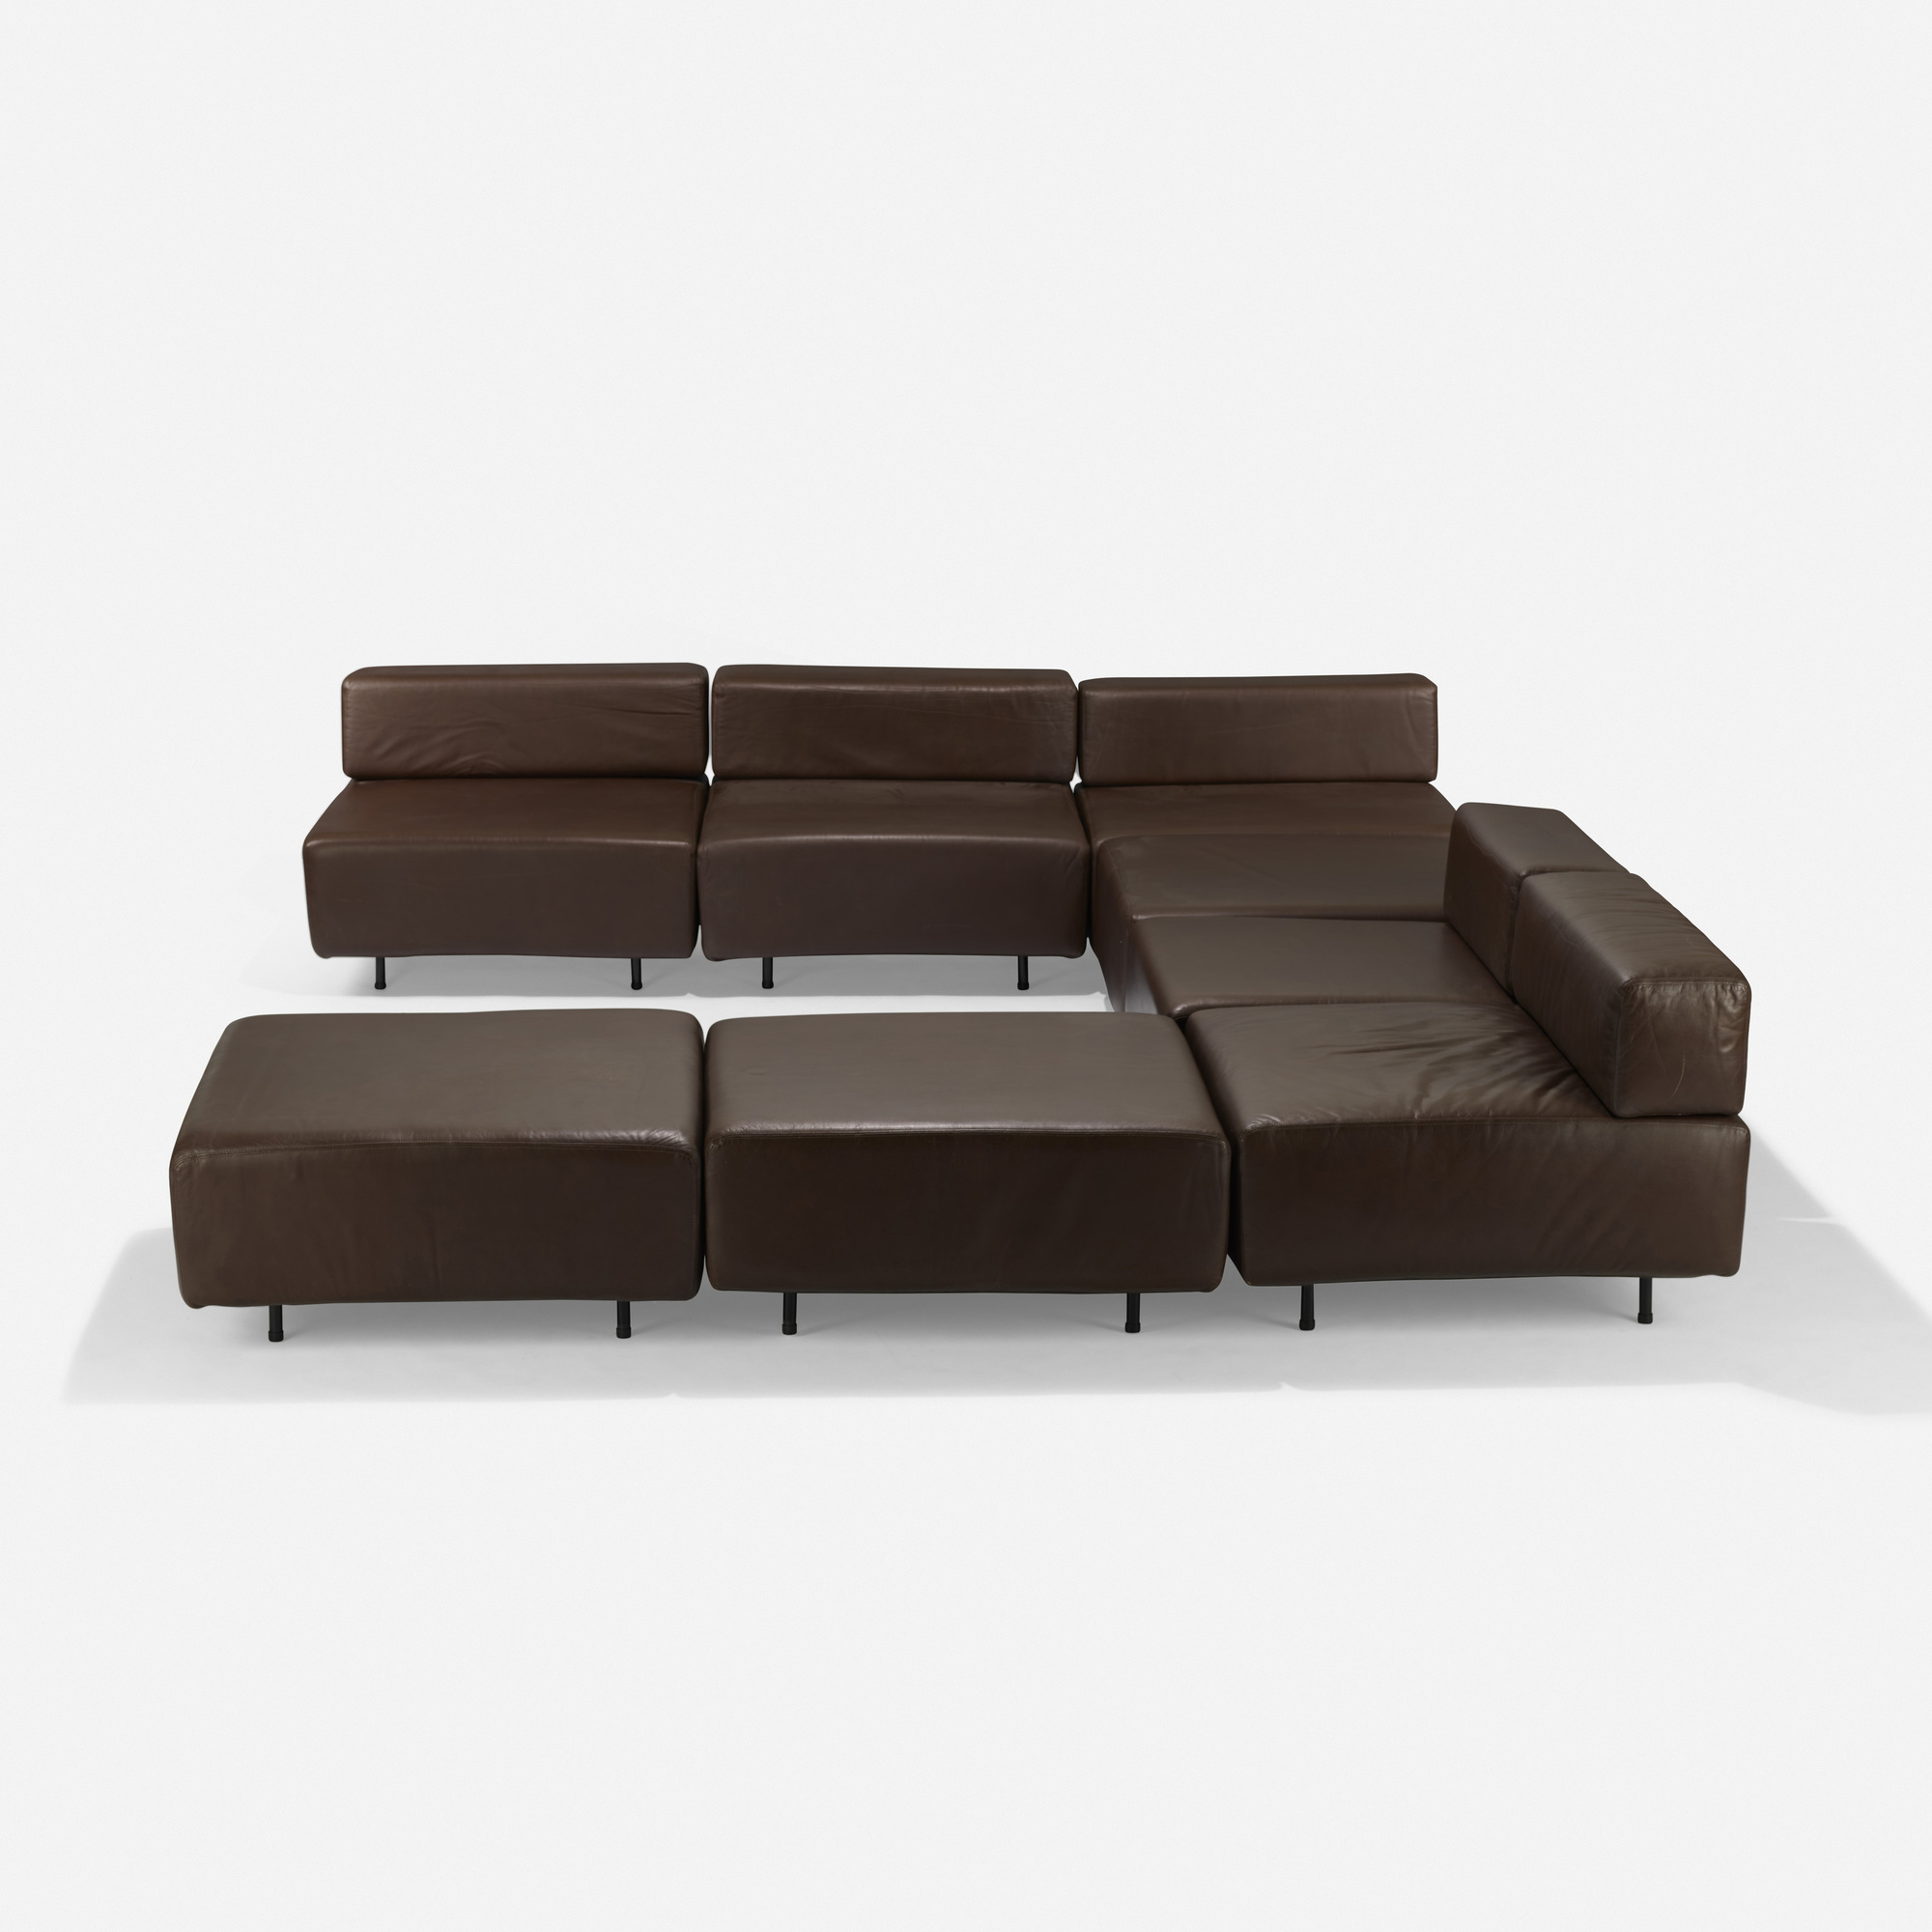 196: Harvey Probber / Cubo sectional (2 of 3)